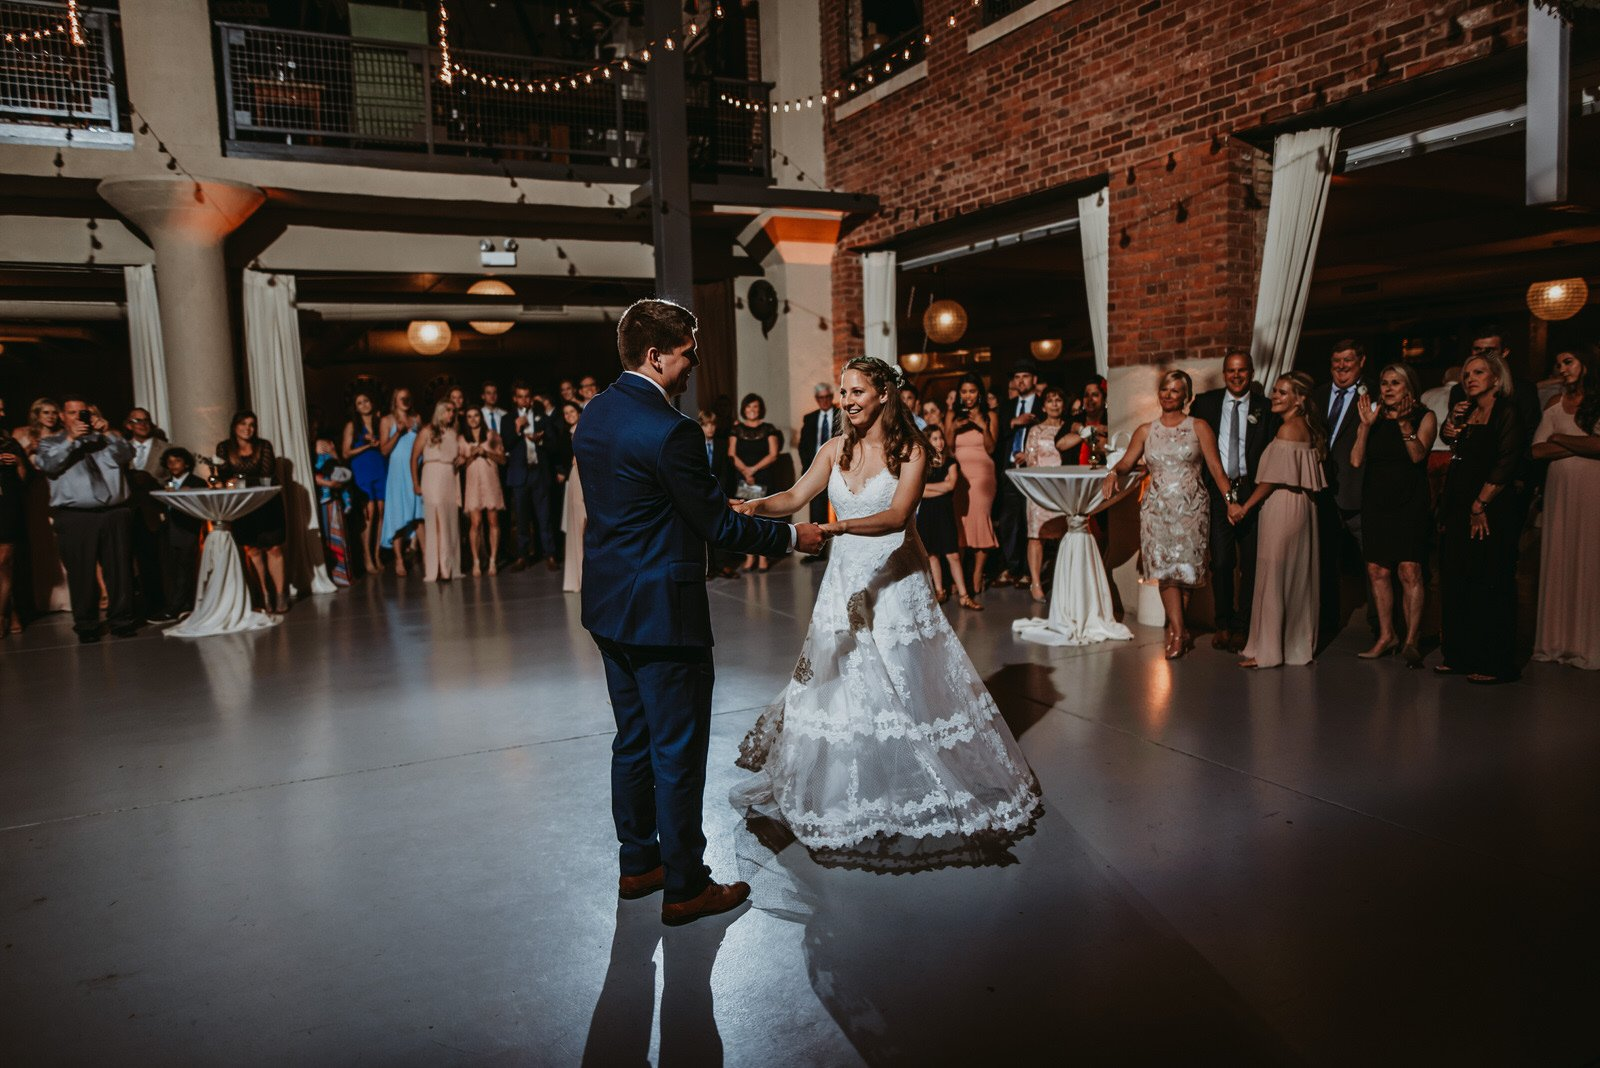 Architectural artifacts wedding photography, first dance